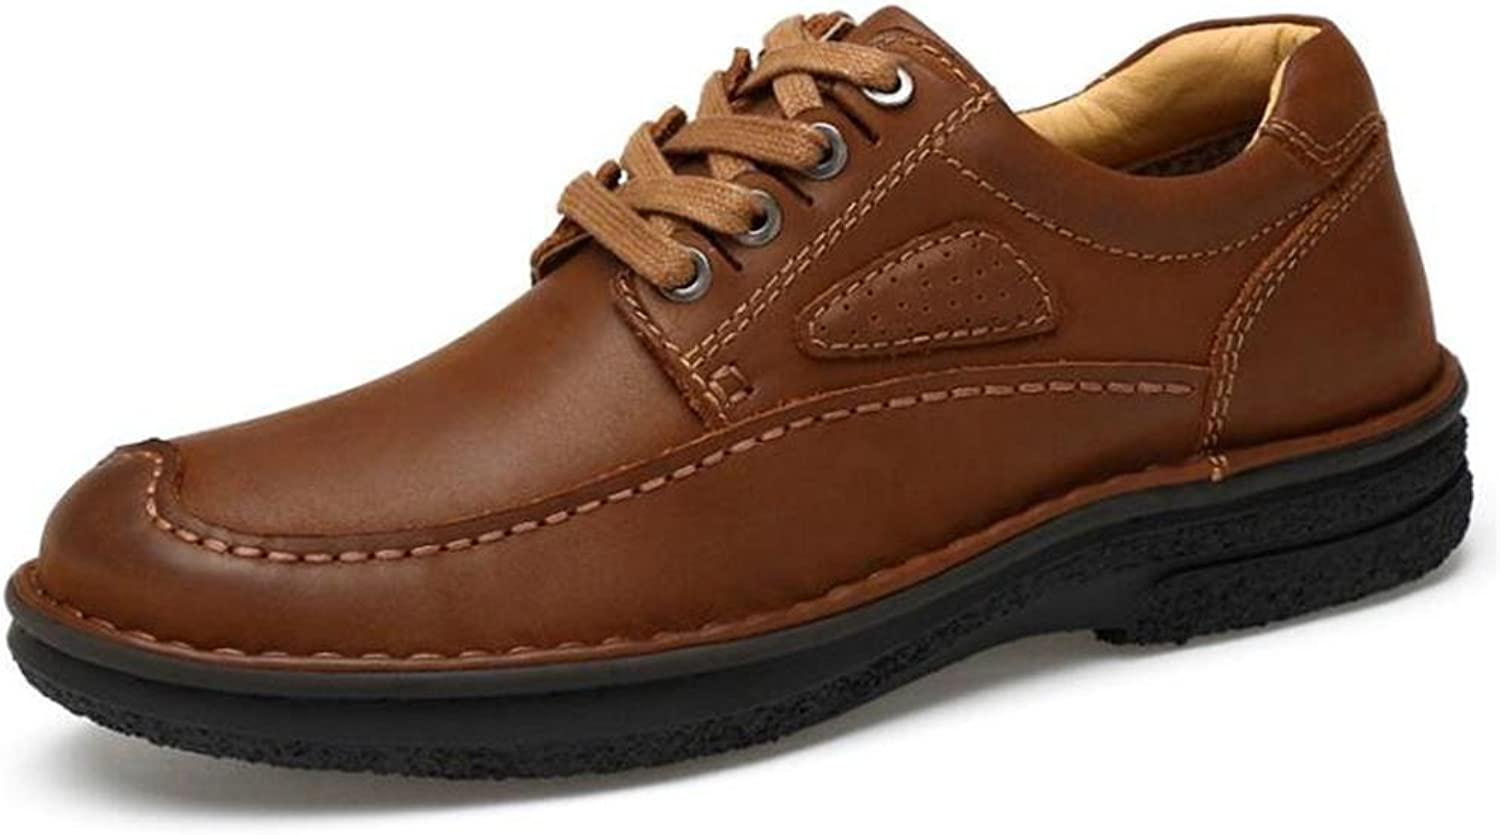 Men shoes Genuine Leather Lace Up Plain Toe Work Handmade Derby Size 38To 44